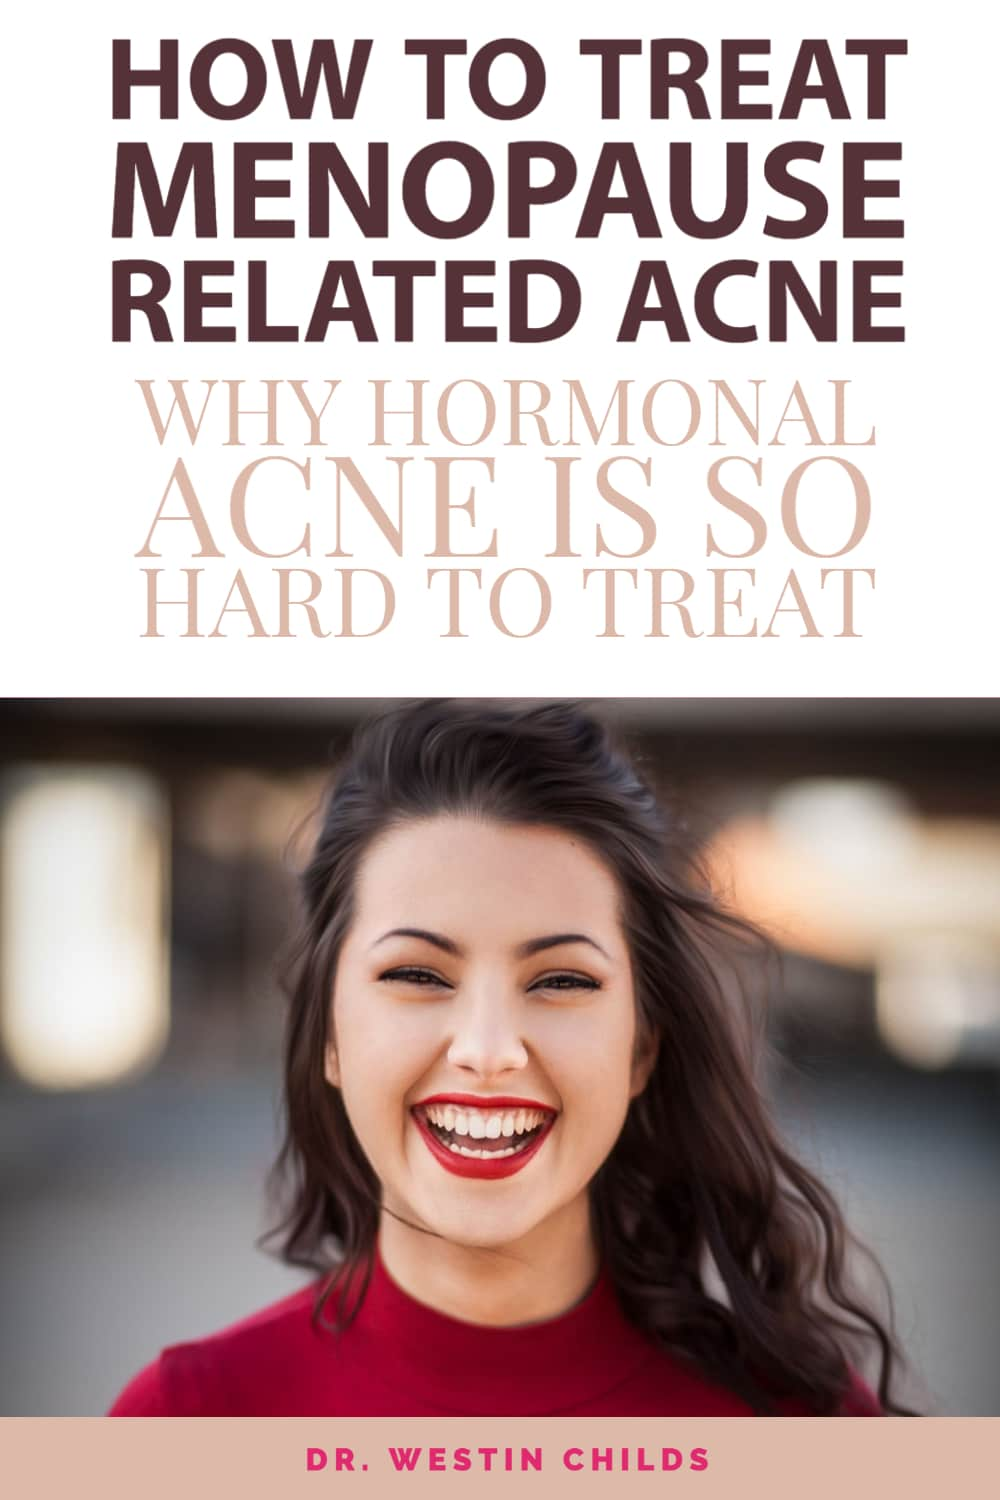 how to treat menopause related acne